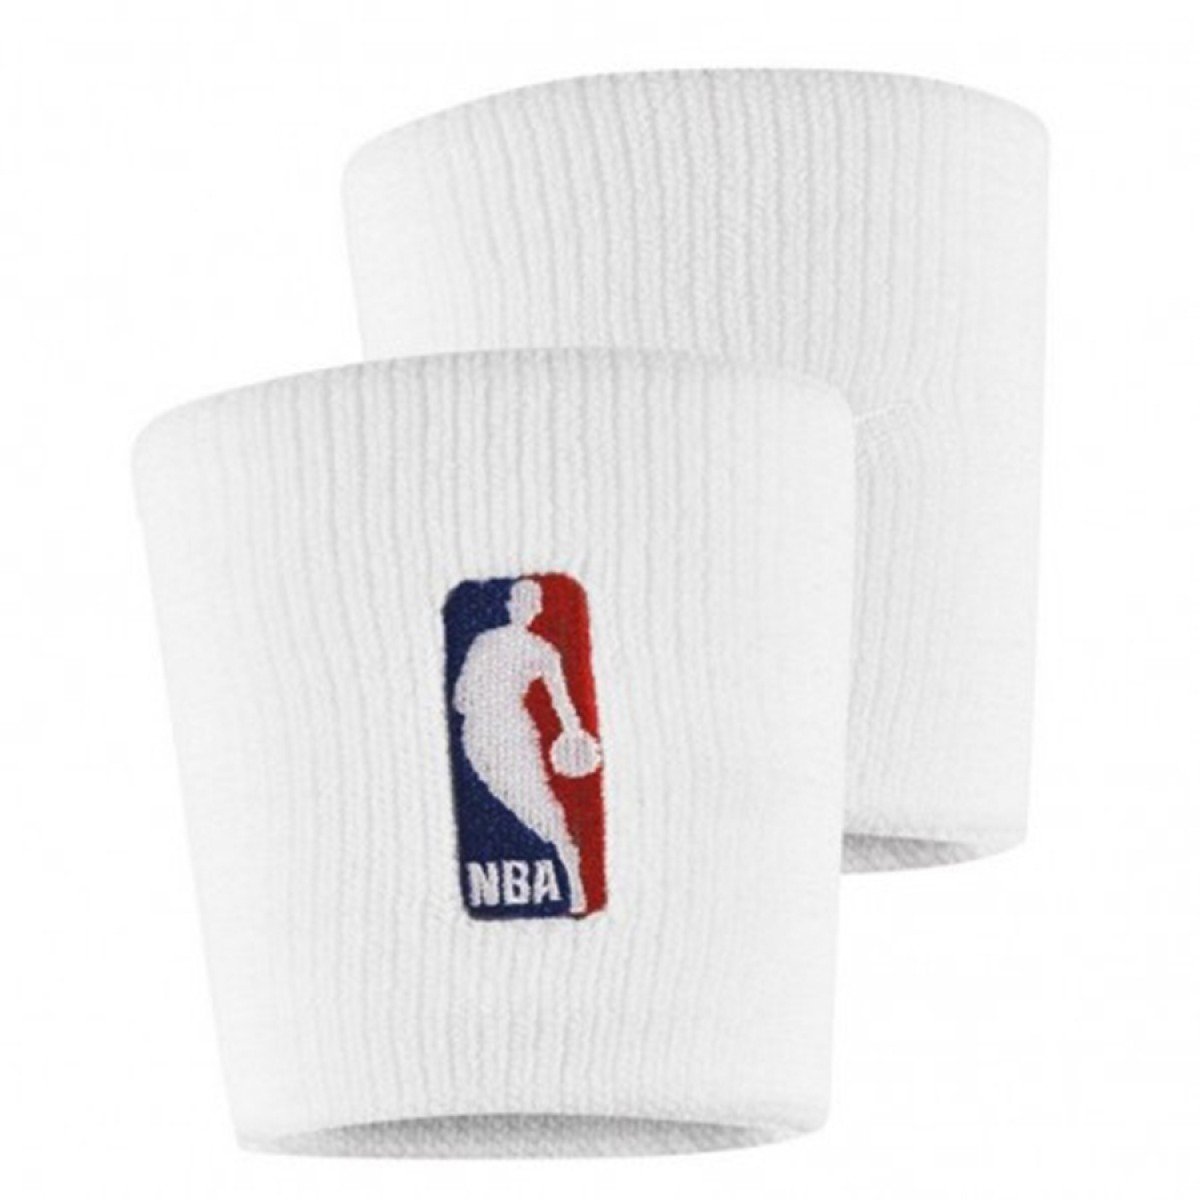 Nike Wristbands NBA 'White'